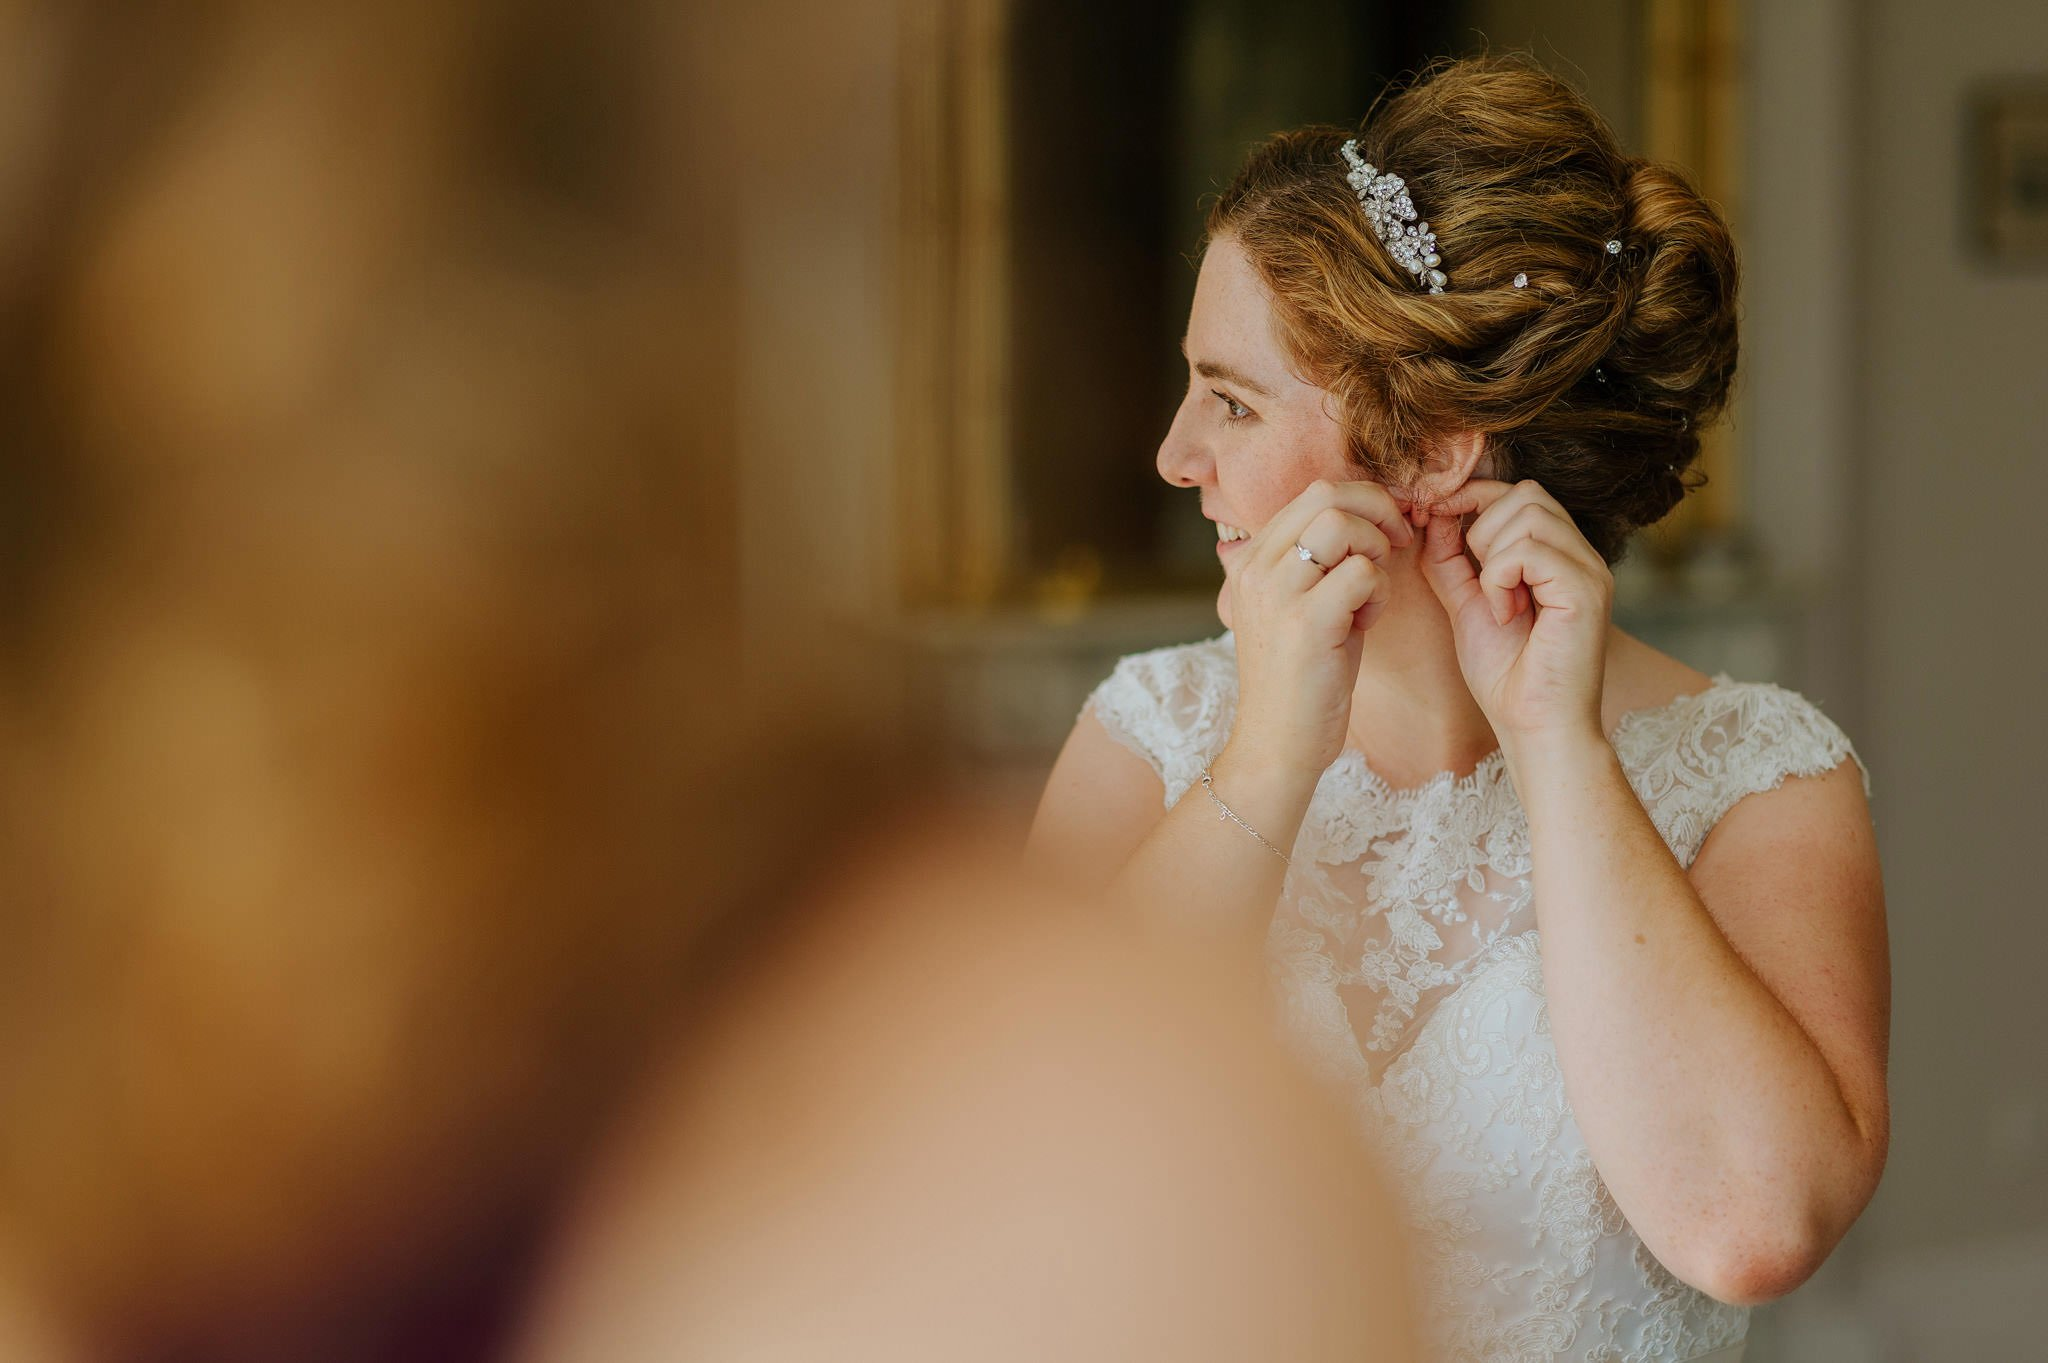 Wedding photography at Homme House in Herefordshire, West Midlands 10